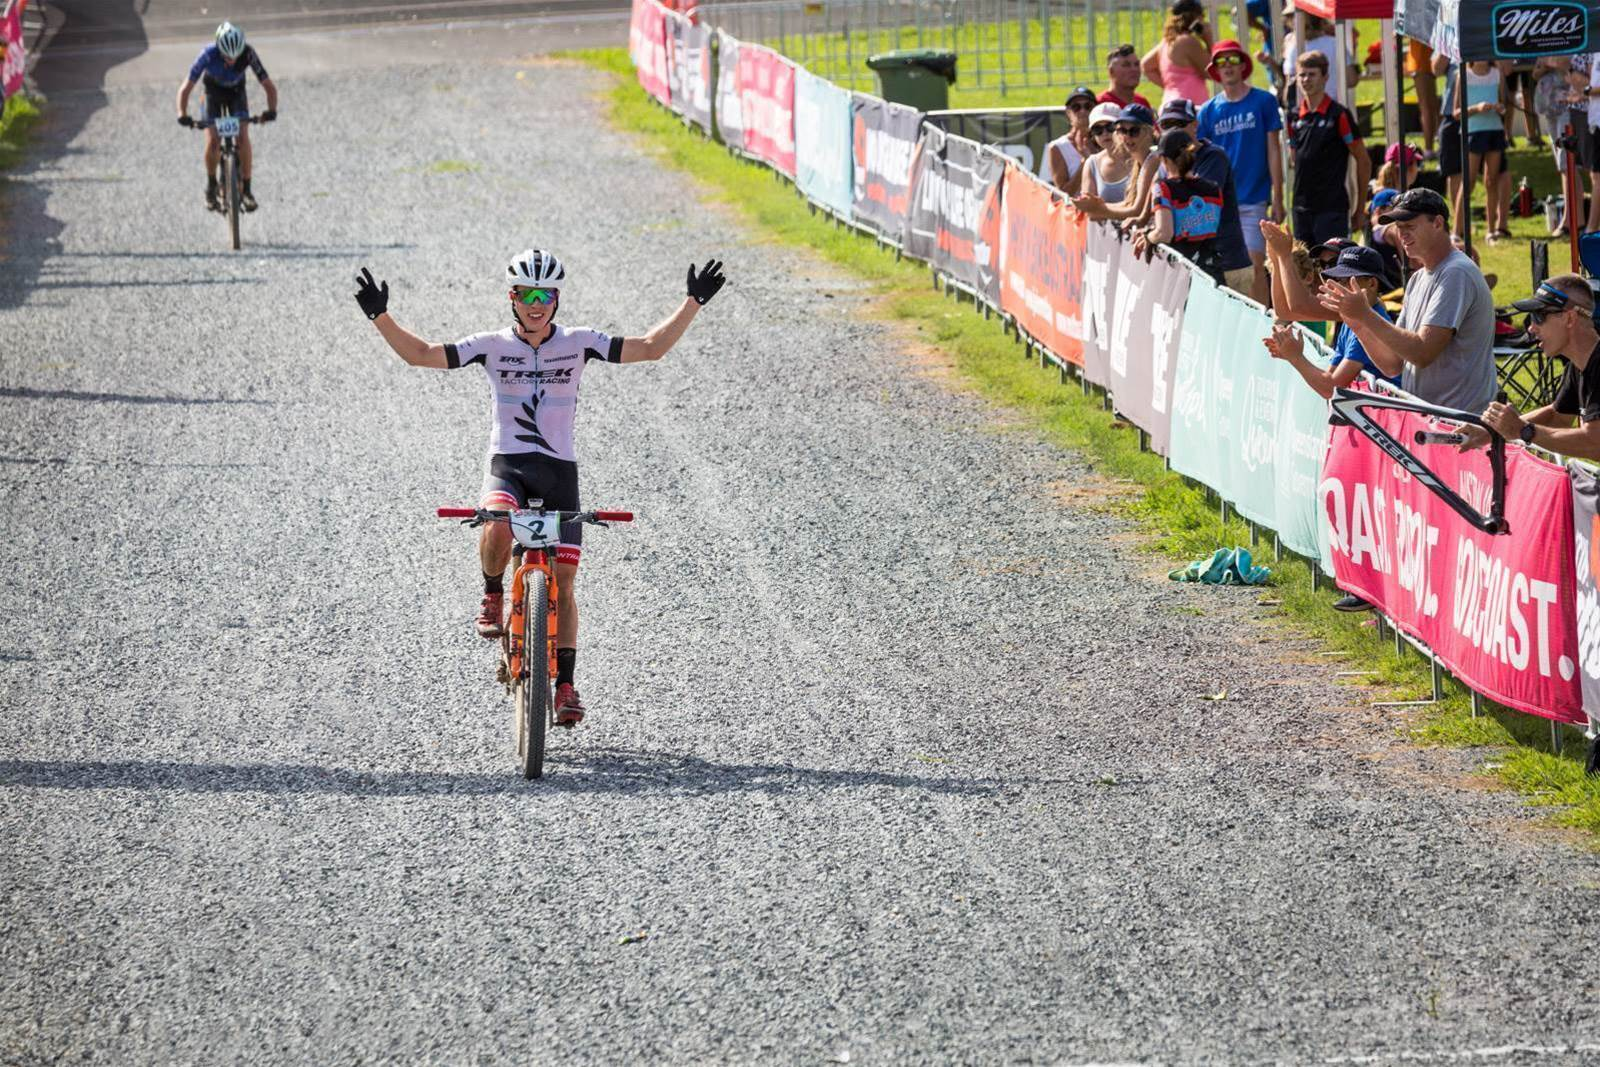 Kiwis conquer National Cross-Country races